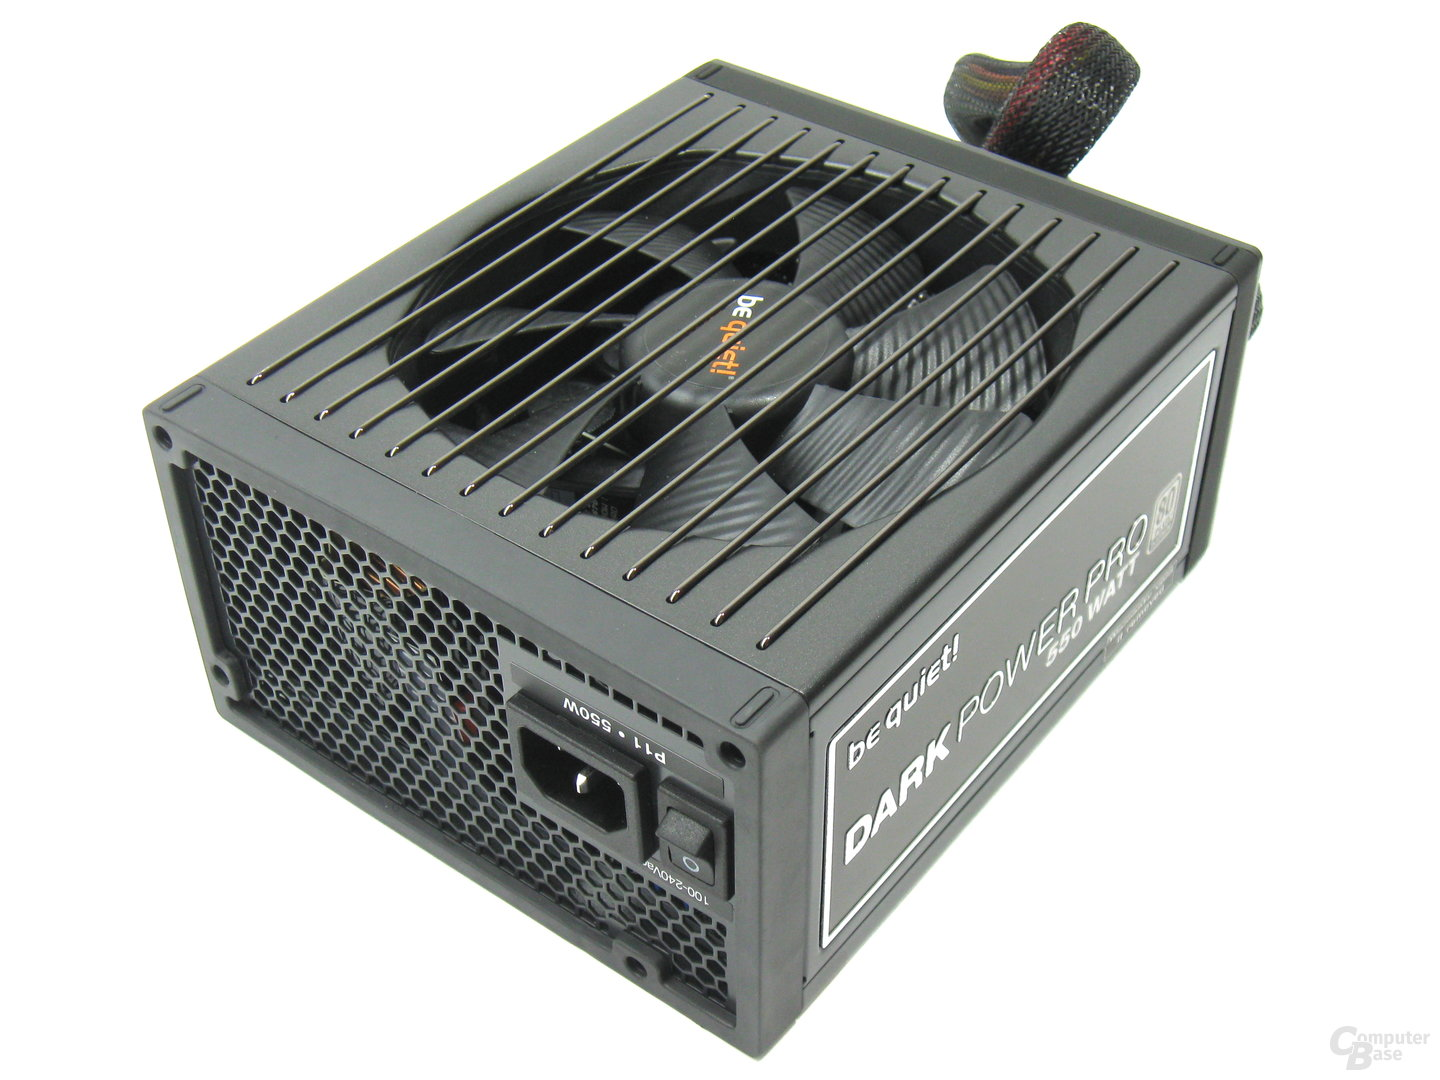 be quiet! Dark Power Pro P11 550W